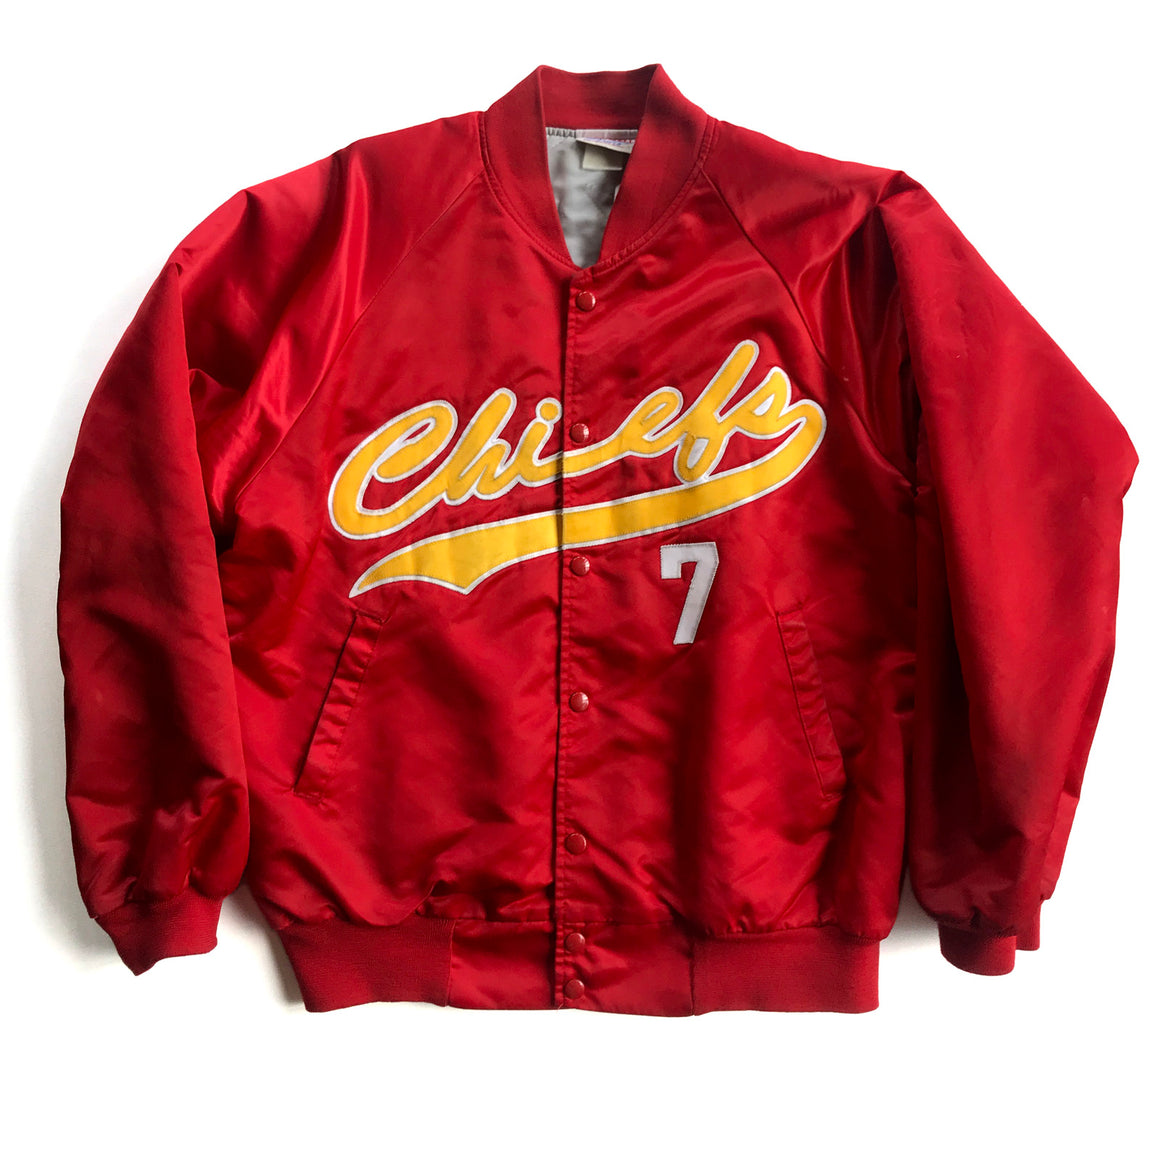 WESTSIDE STOREY VINTAGE | KANSAS CITY CHIEFS PLAYERS SATIN JACKET